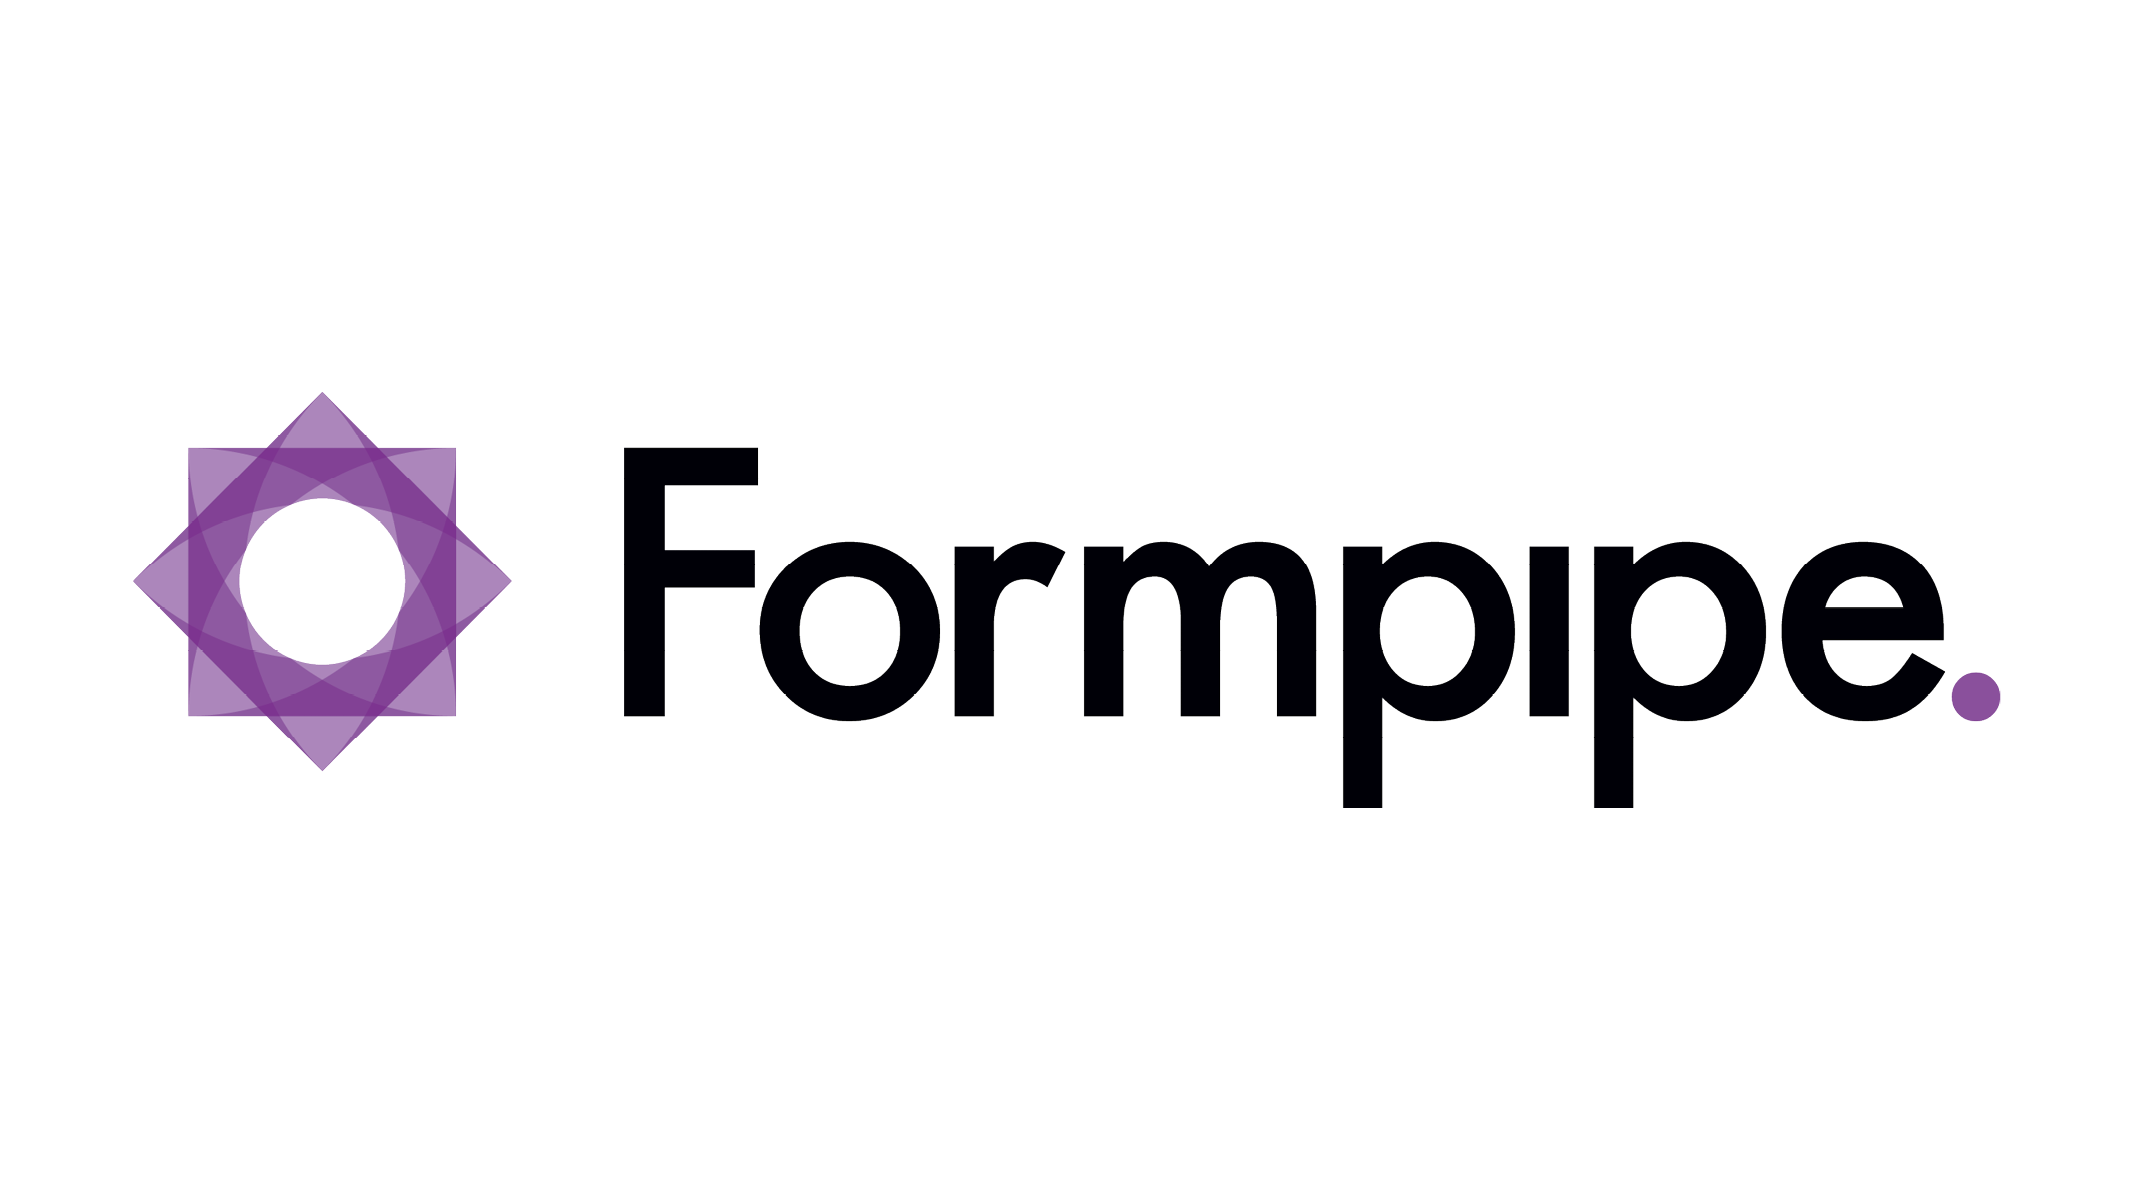 Arineo enters partnership with Formpipe Lasernet